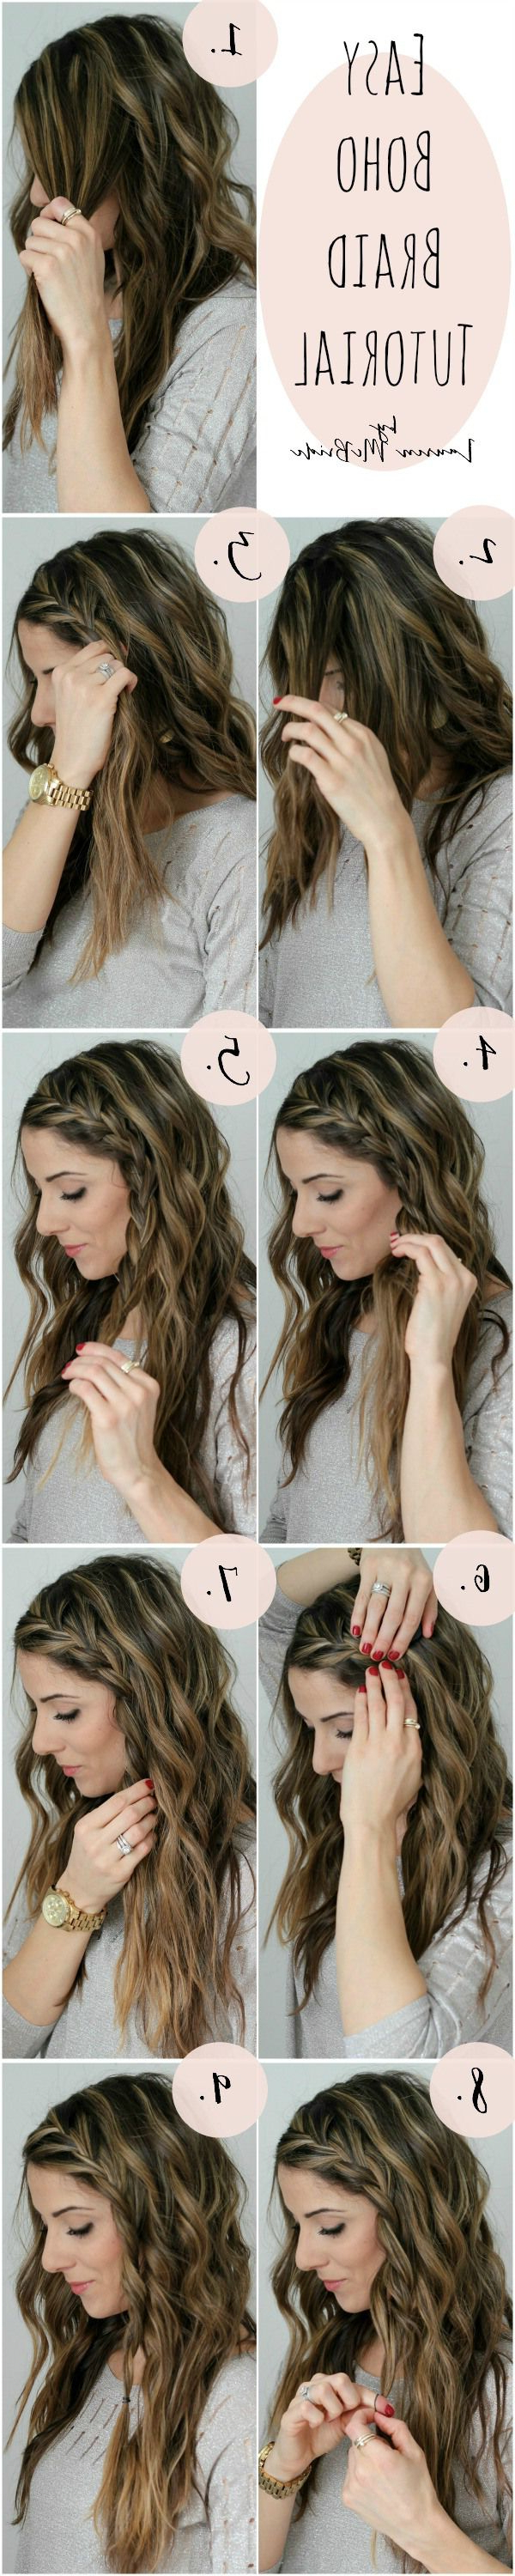 30 Boho Chic Hairstyles For 2019 – Pretty Designs Intended For Latest Boho Medium Hairstyles (View 17 of 20)